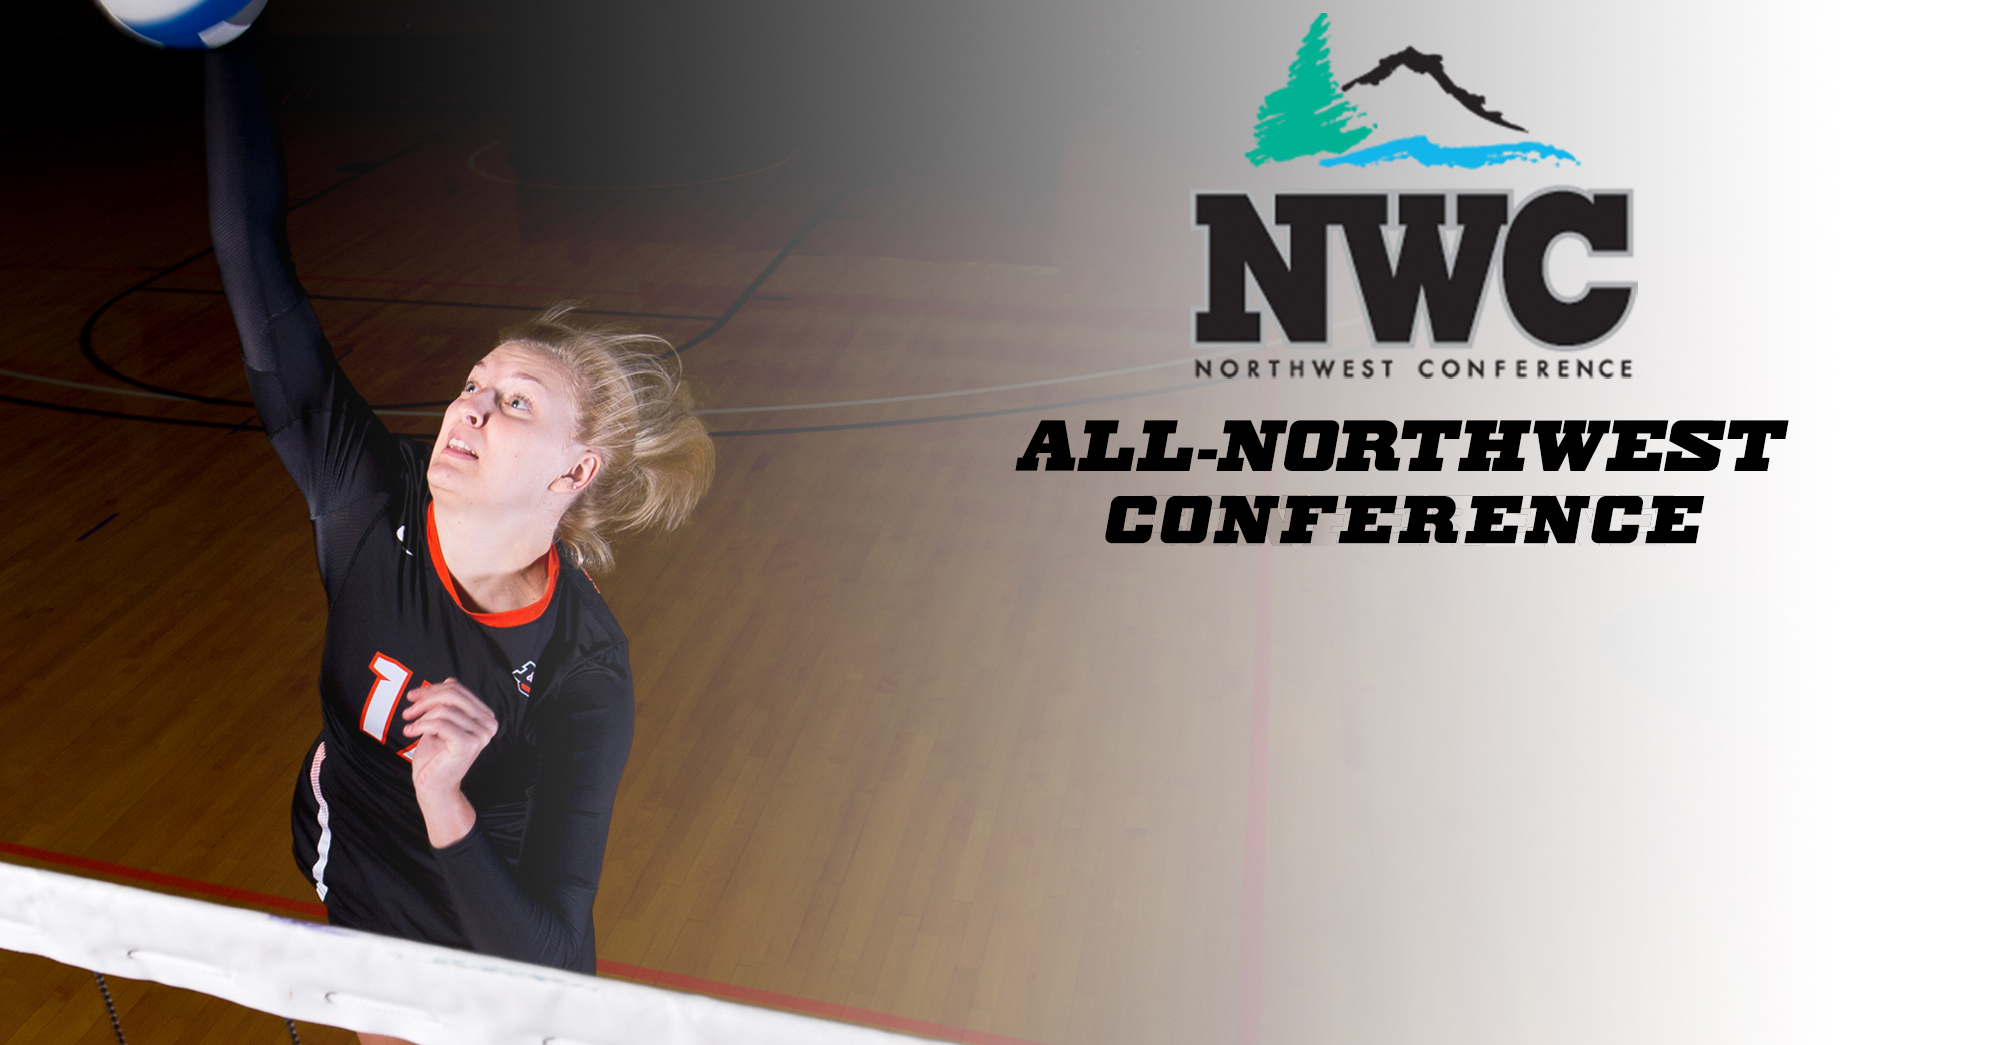 Meyer selected All-Northwest Conference